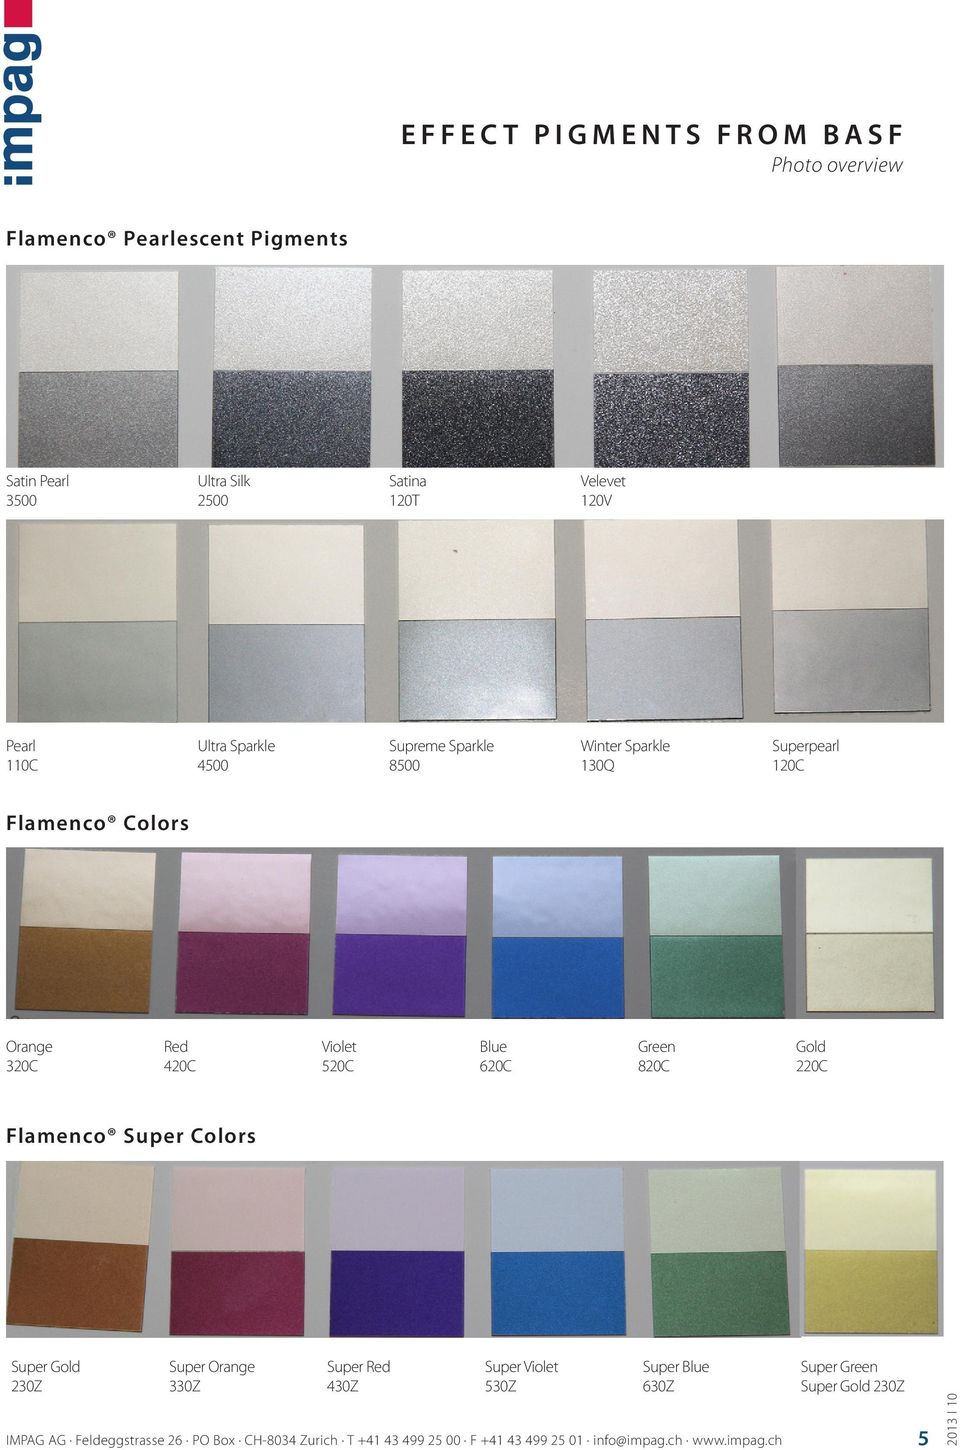 Effect Pigments From Basf Photo Overview Pdf